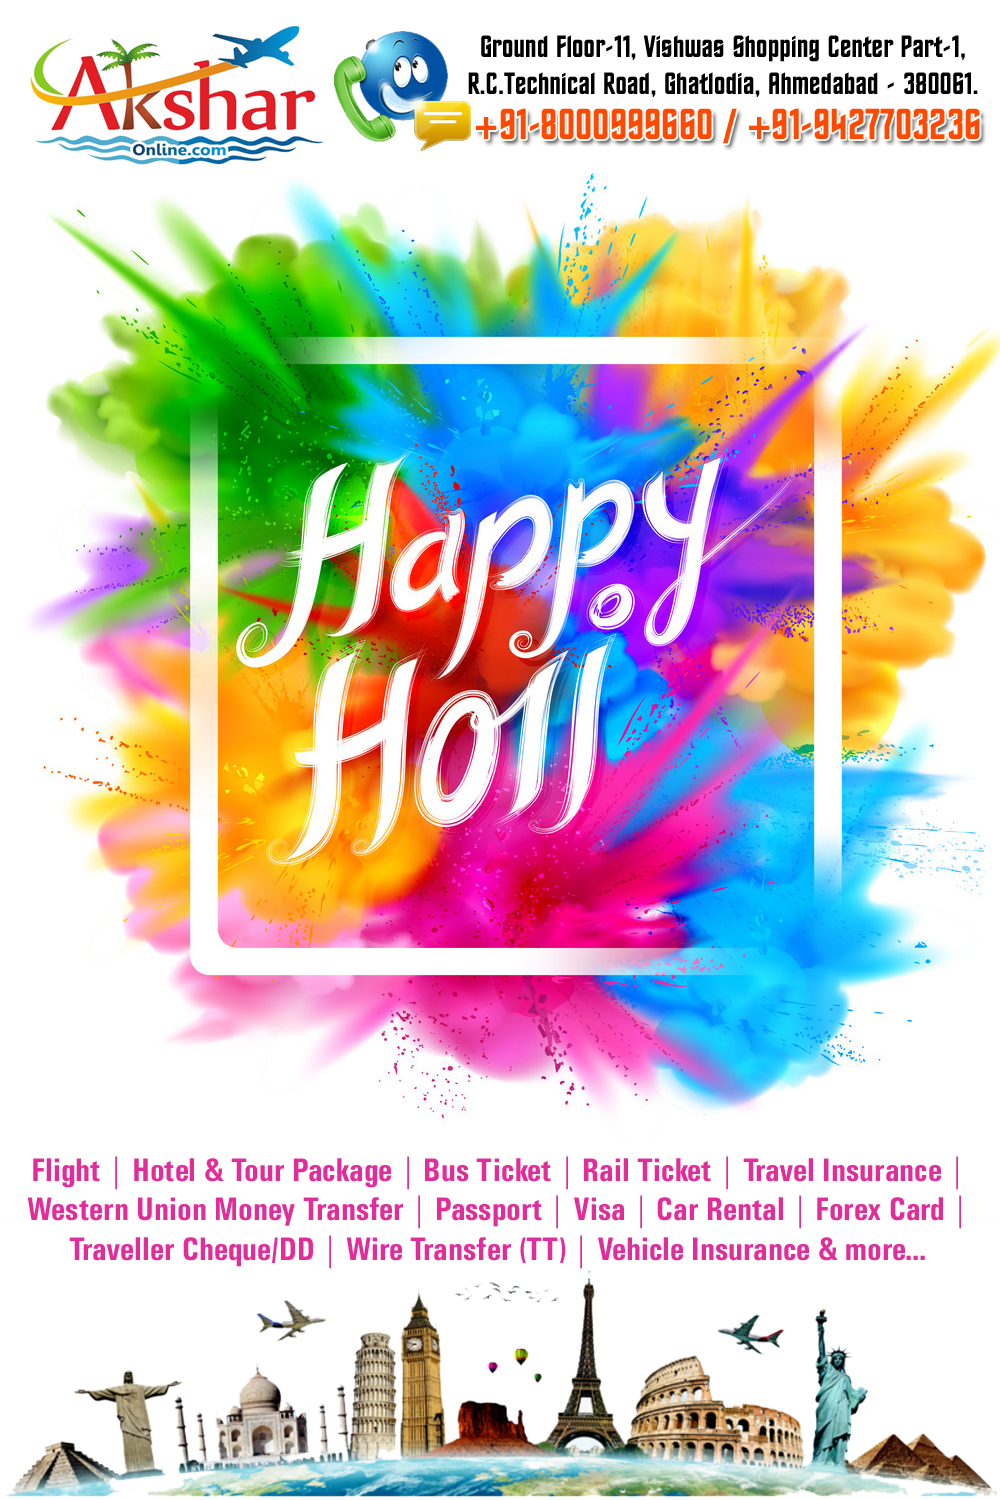 Happy Holi - Flight, Hotel & Tour Package, Bus Ticket, Rail Ticket, Travel Insurance, Western Union Money Transfer, Passport, Visa, Car Rental, Forex Card, Traveller Cheque/DD, Wire Transfer(TT), Vehicle Insurance... aksharonline.com, akshar travel services, Ghatlodia, Ahmedabad, Air Ticket Agent in Ghatlodia, Sola, Gota, Chandlodiya, Science City, Bhadaj, Naranpura, Shastrinagar, Vadaj, Ranip, Sabarmati, Chandkheda, Vastral, Bapunagar, Hirawadi, Saraspur, Dariyapur, Satellite, Bopal, Guma, Thaltej, Manekbaug, Kalol, Gandhinagar, Mehsana, Nandasan, Kadi,  and more..., railway ticket booking, passport